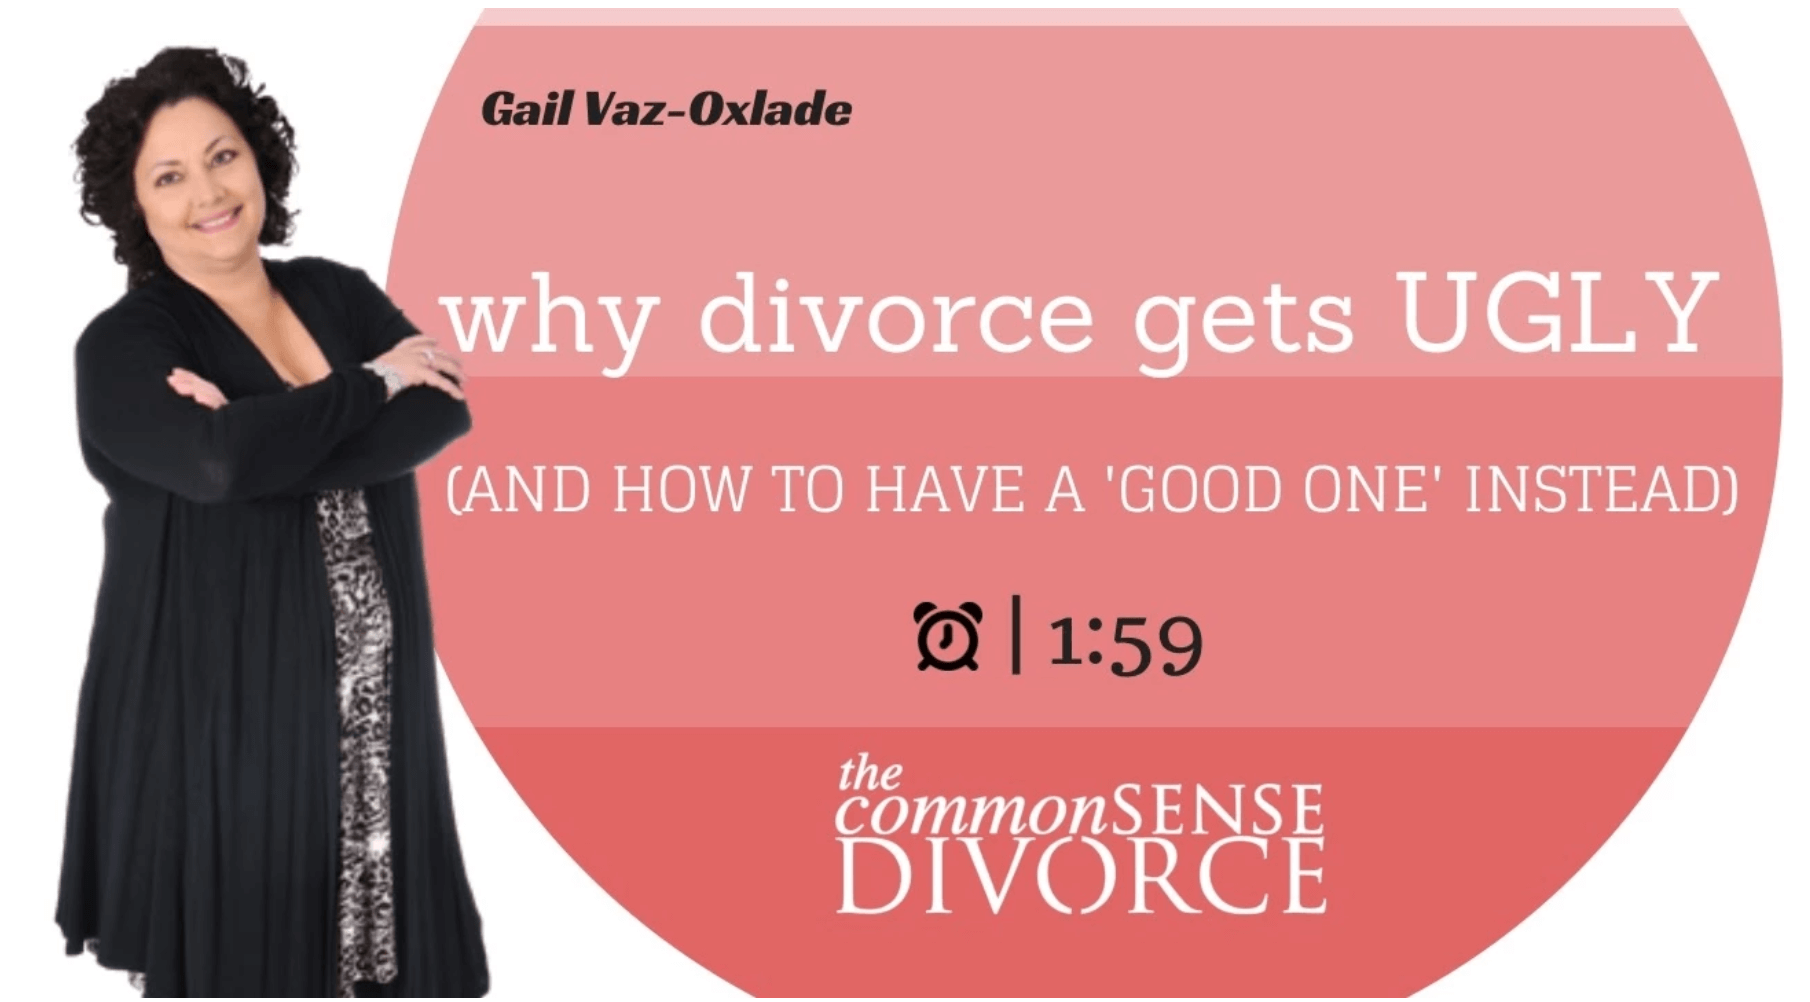 Why Divorce Gets Ugly (and How to Have a 'Good Divorce' Instead) 5